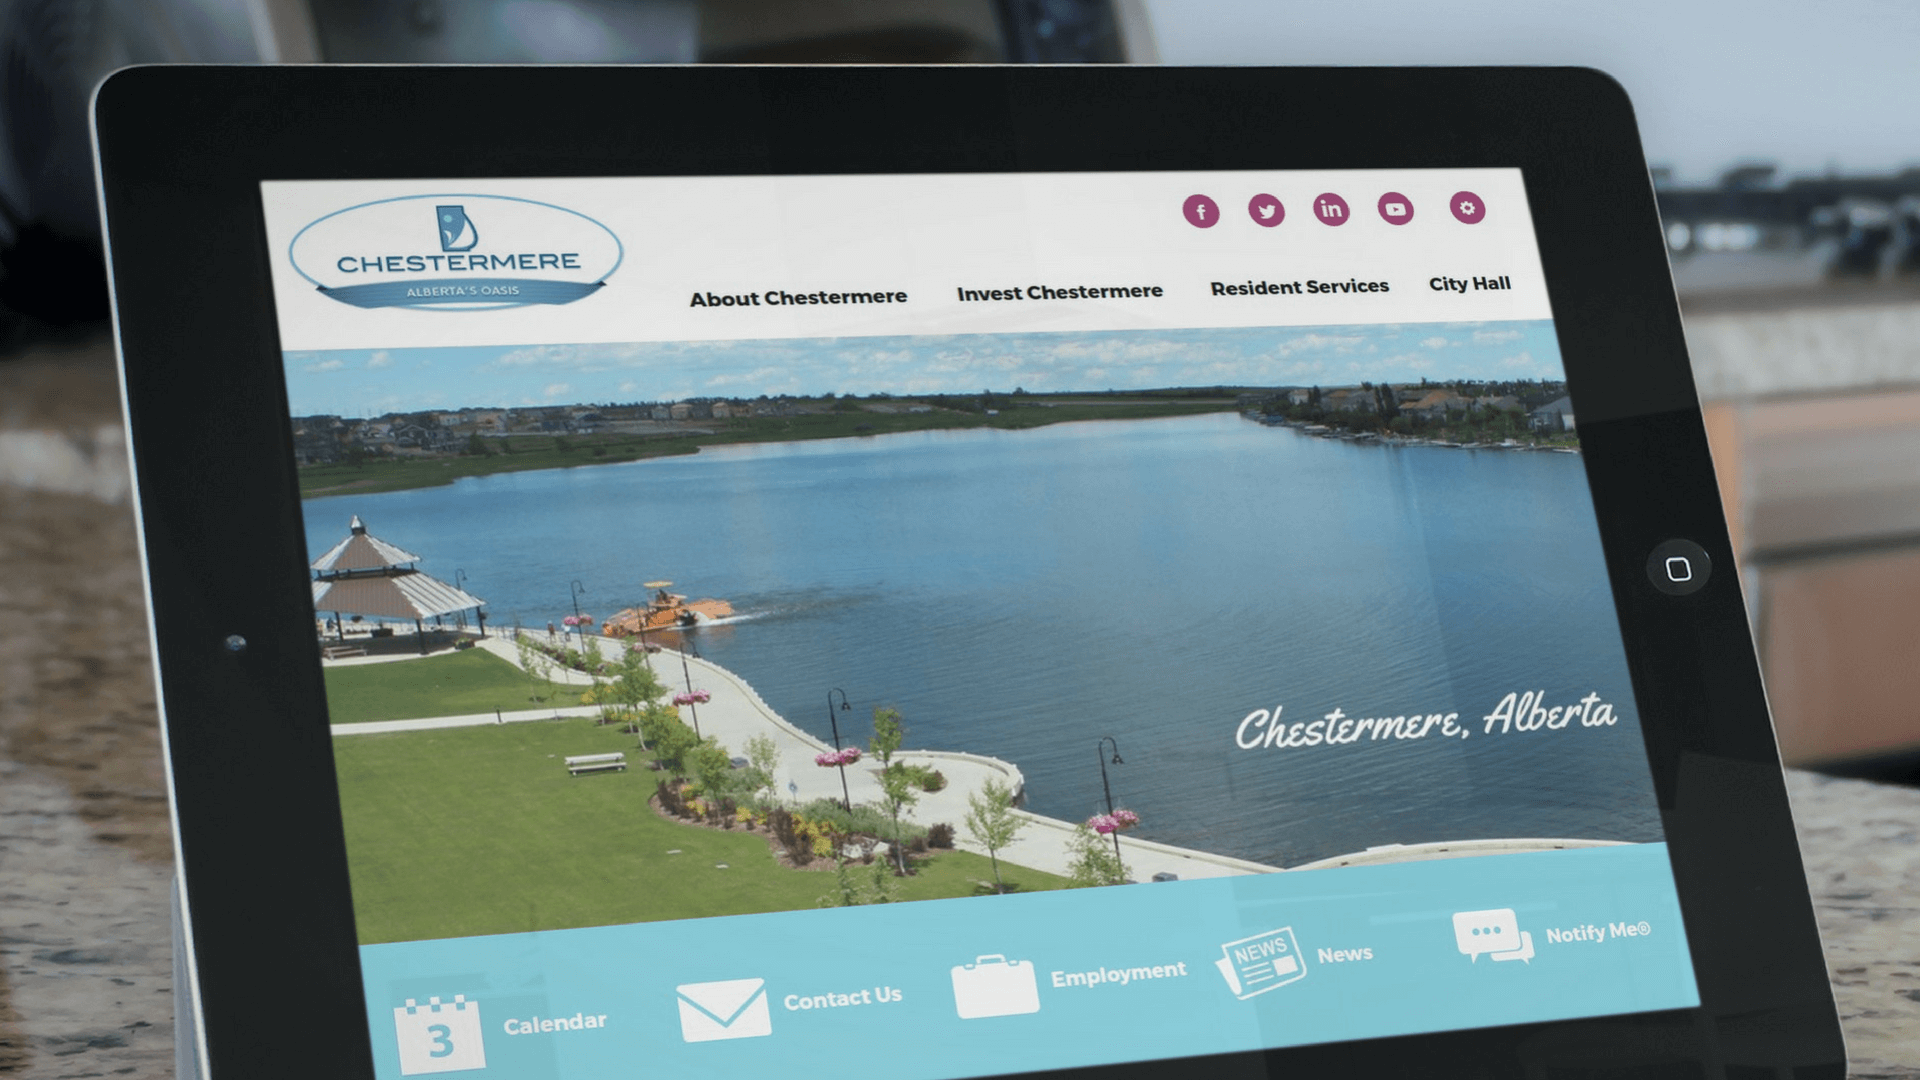 091517-Case-Study-Chestermere, AB Partners with CivicPlus for Award-Winning City Website_fv.png